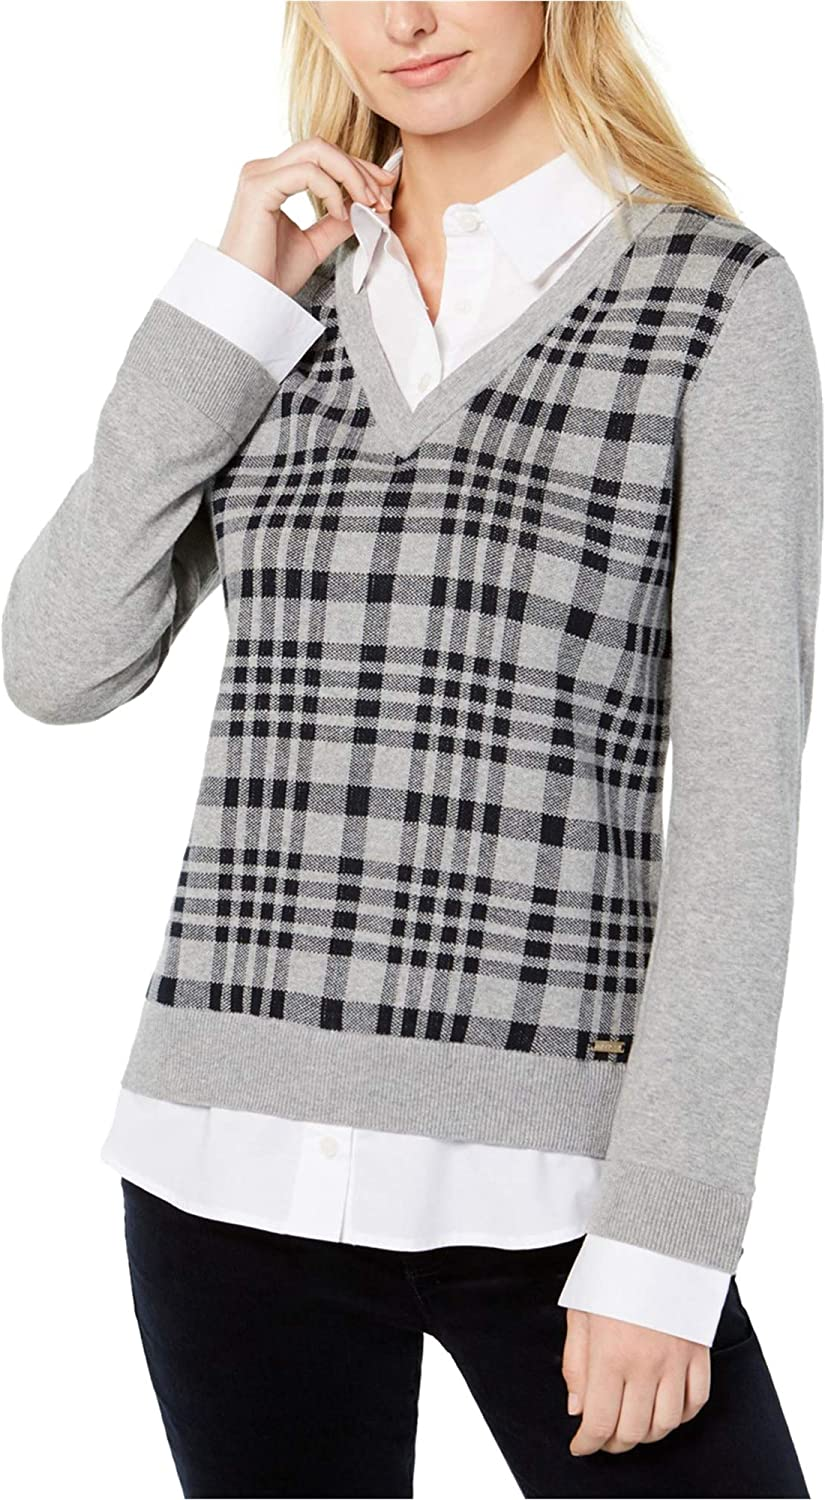 Tommy Hilfiger Womens Layered Look Pullover Sweater